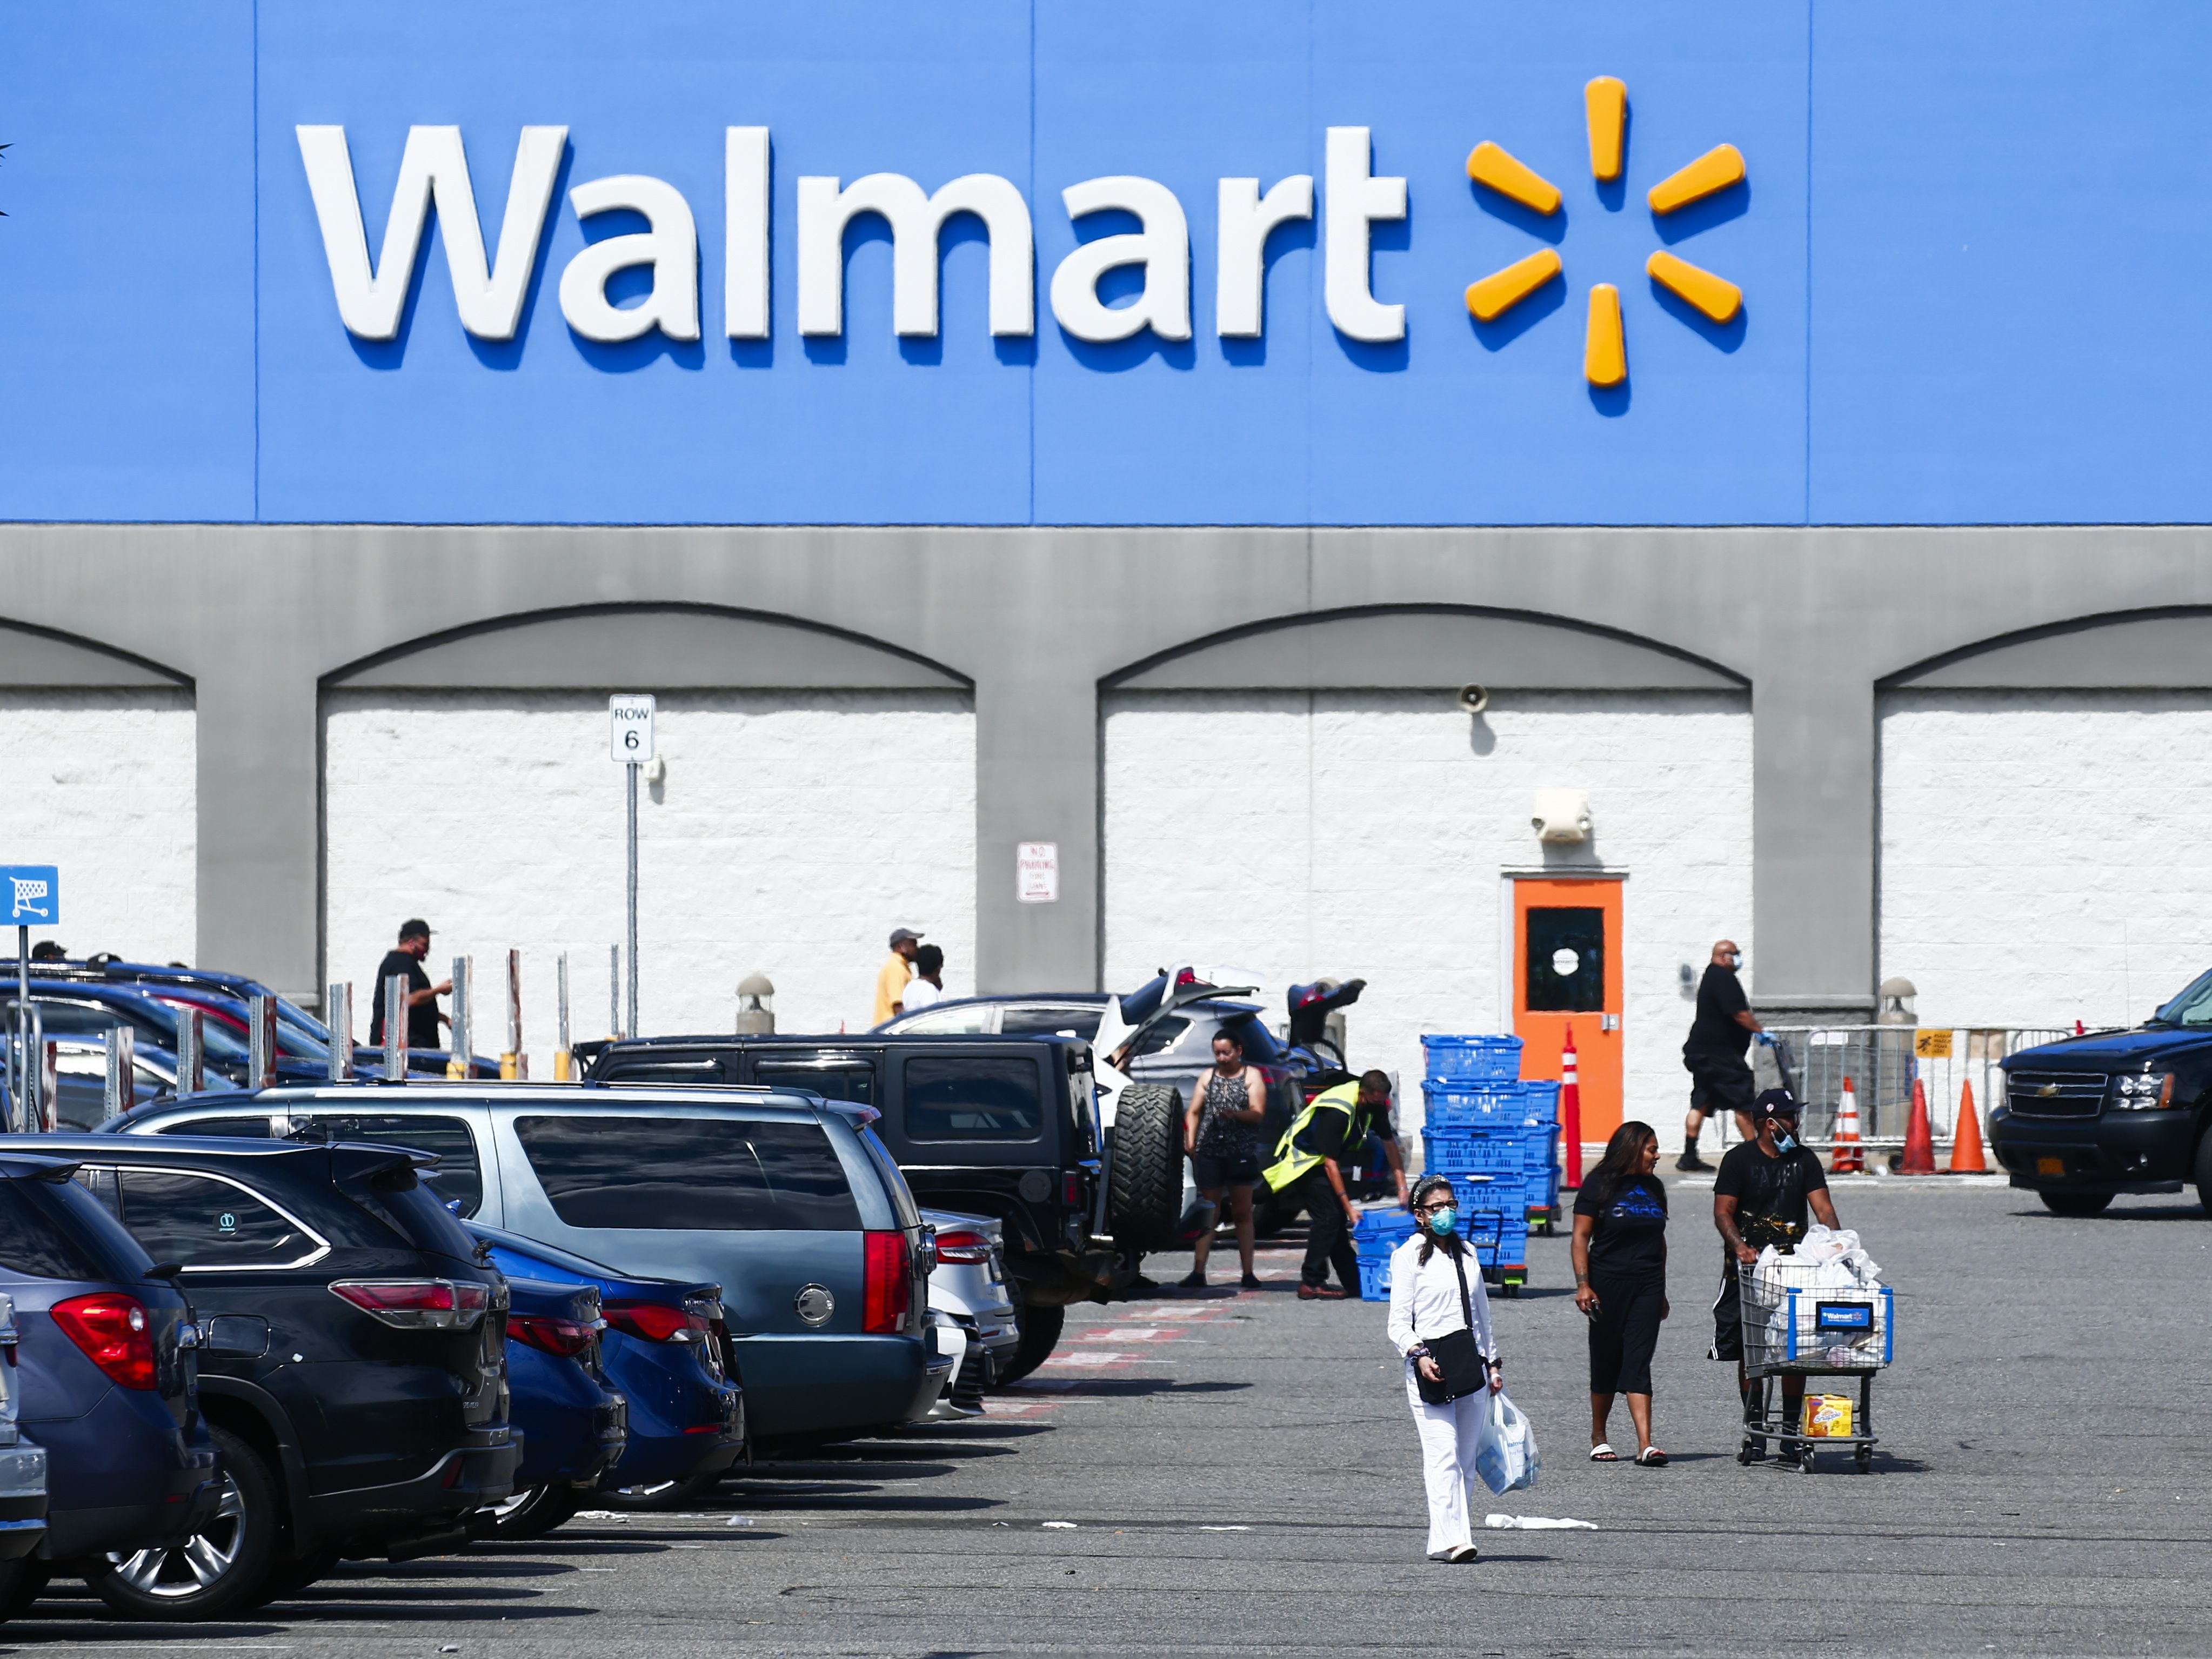 Walmart Black Friday 2020 Events Dates Hours Deals And More